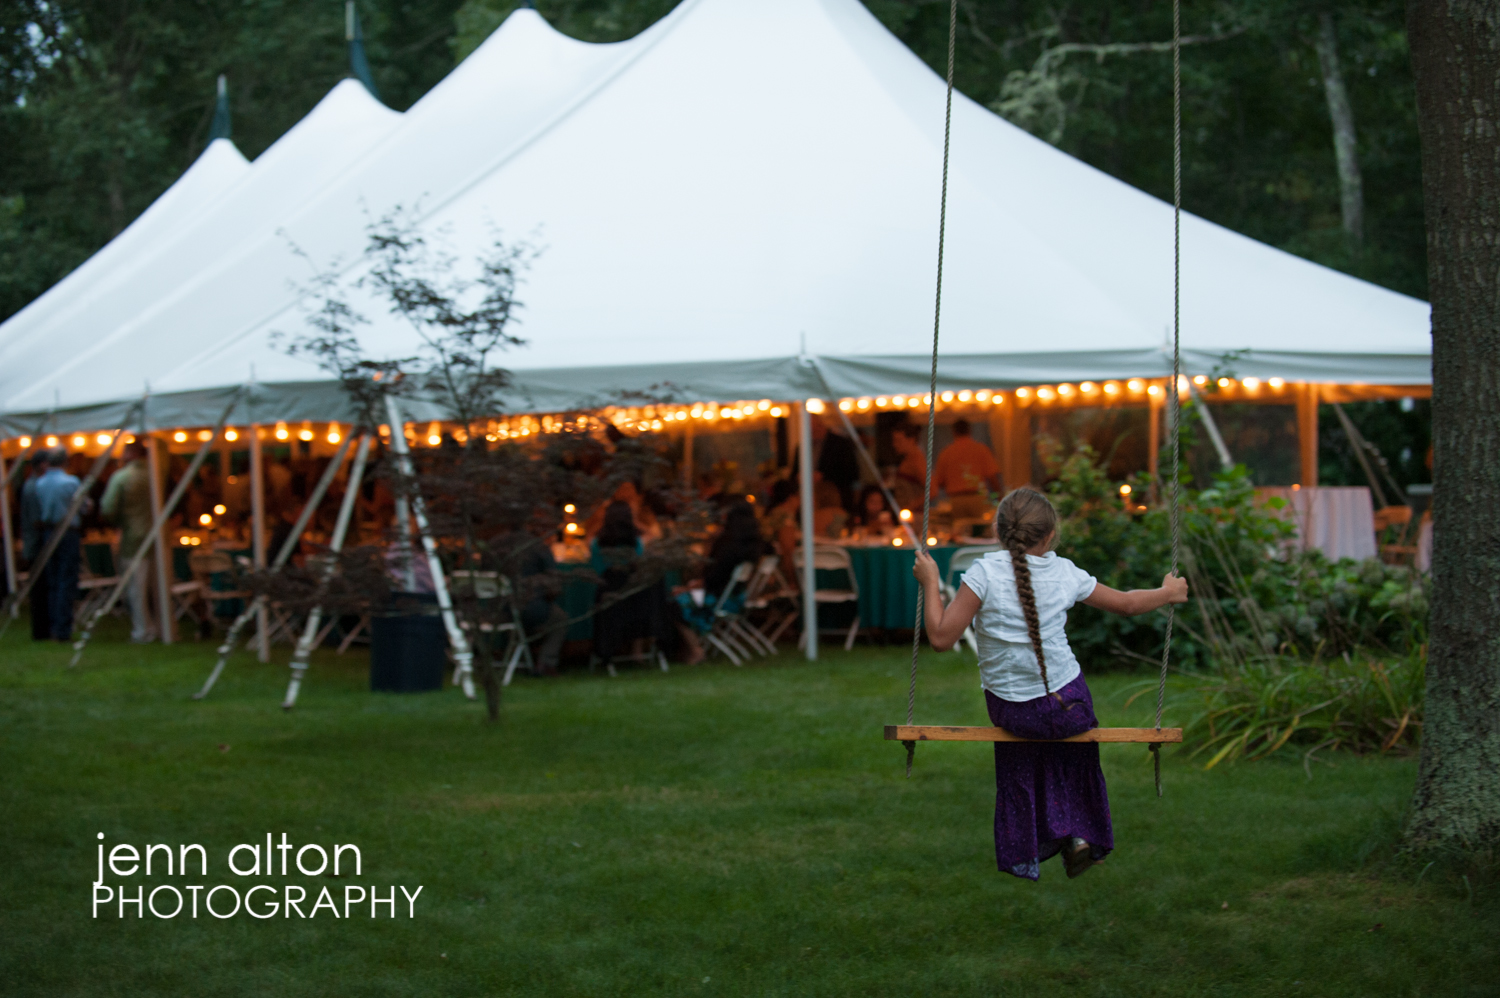 Tent reception and child on swing looking on, Cape Cod Wedding